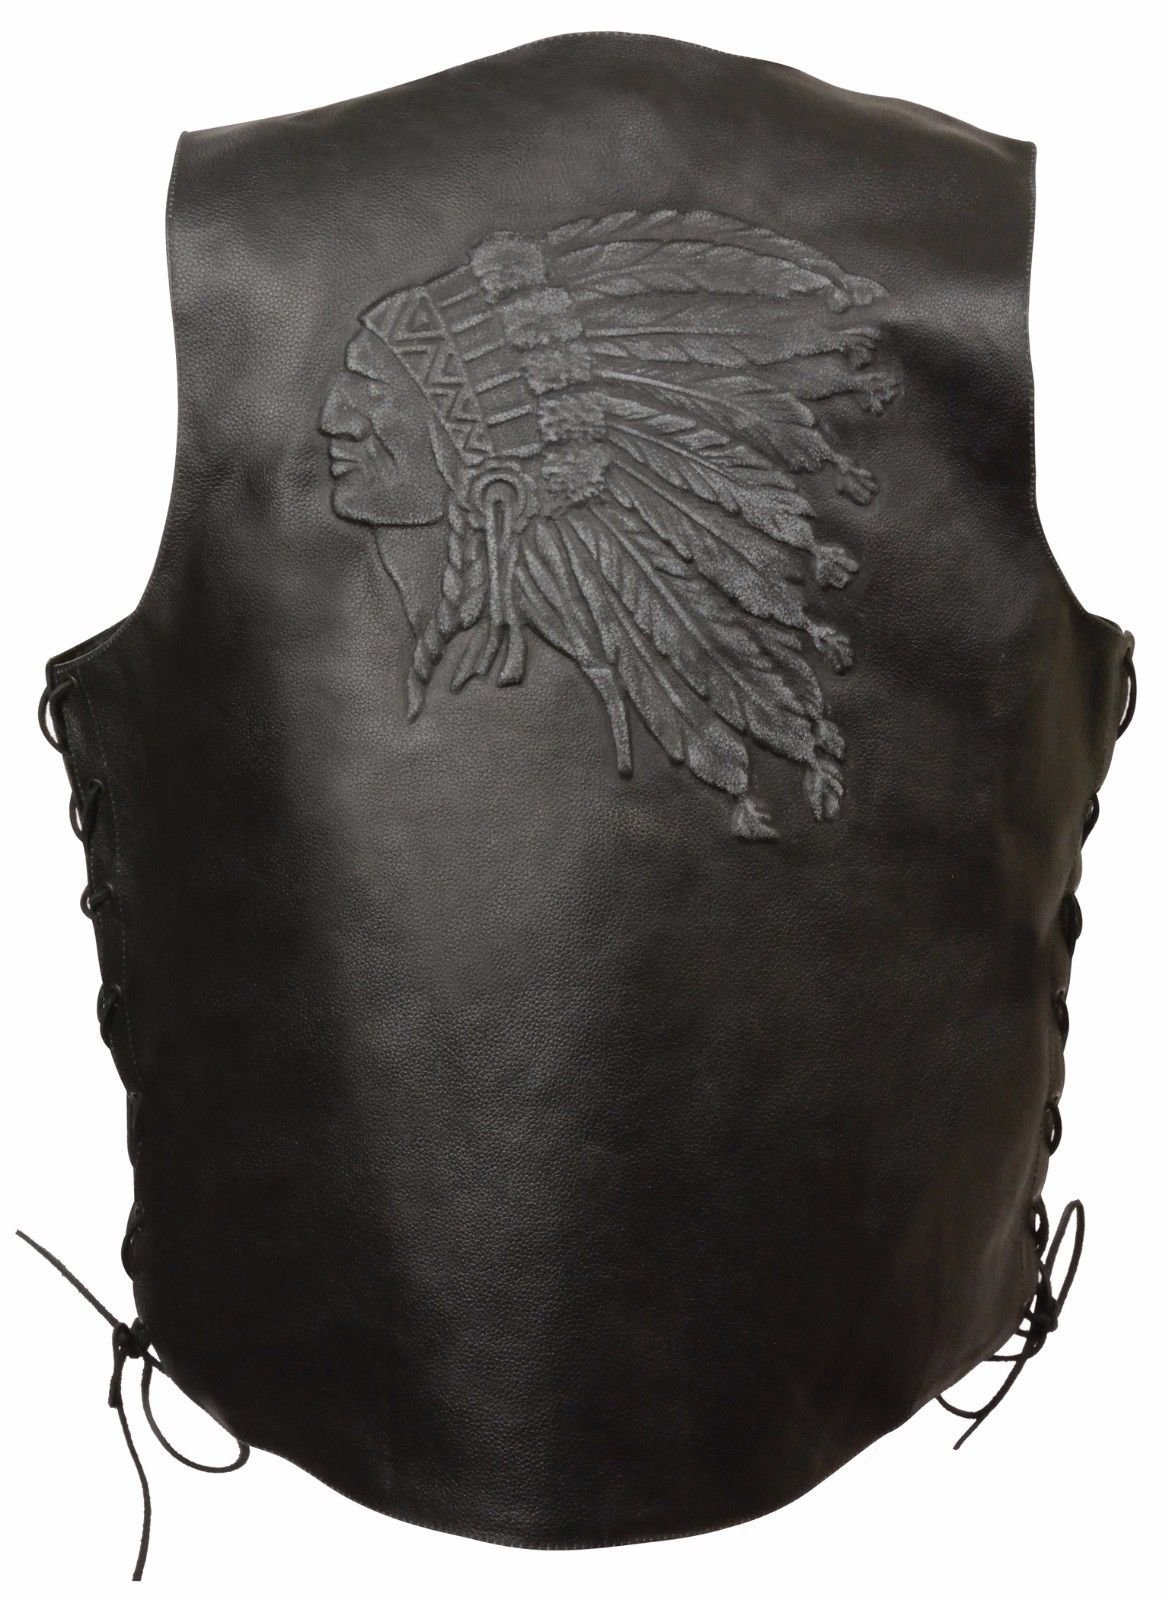 MEN'S MOTORCYCLE BLACK INDIAN HEAD EMBROIDERED LEATHER VEST W/SIDE LACES GREAT $ (2XL Regular)